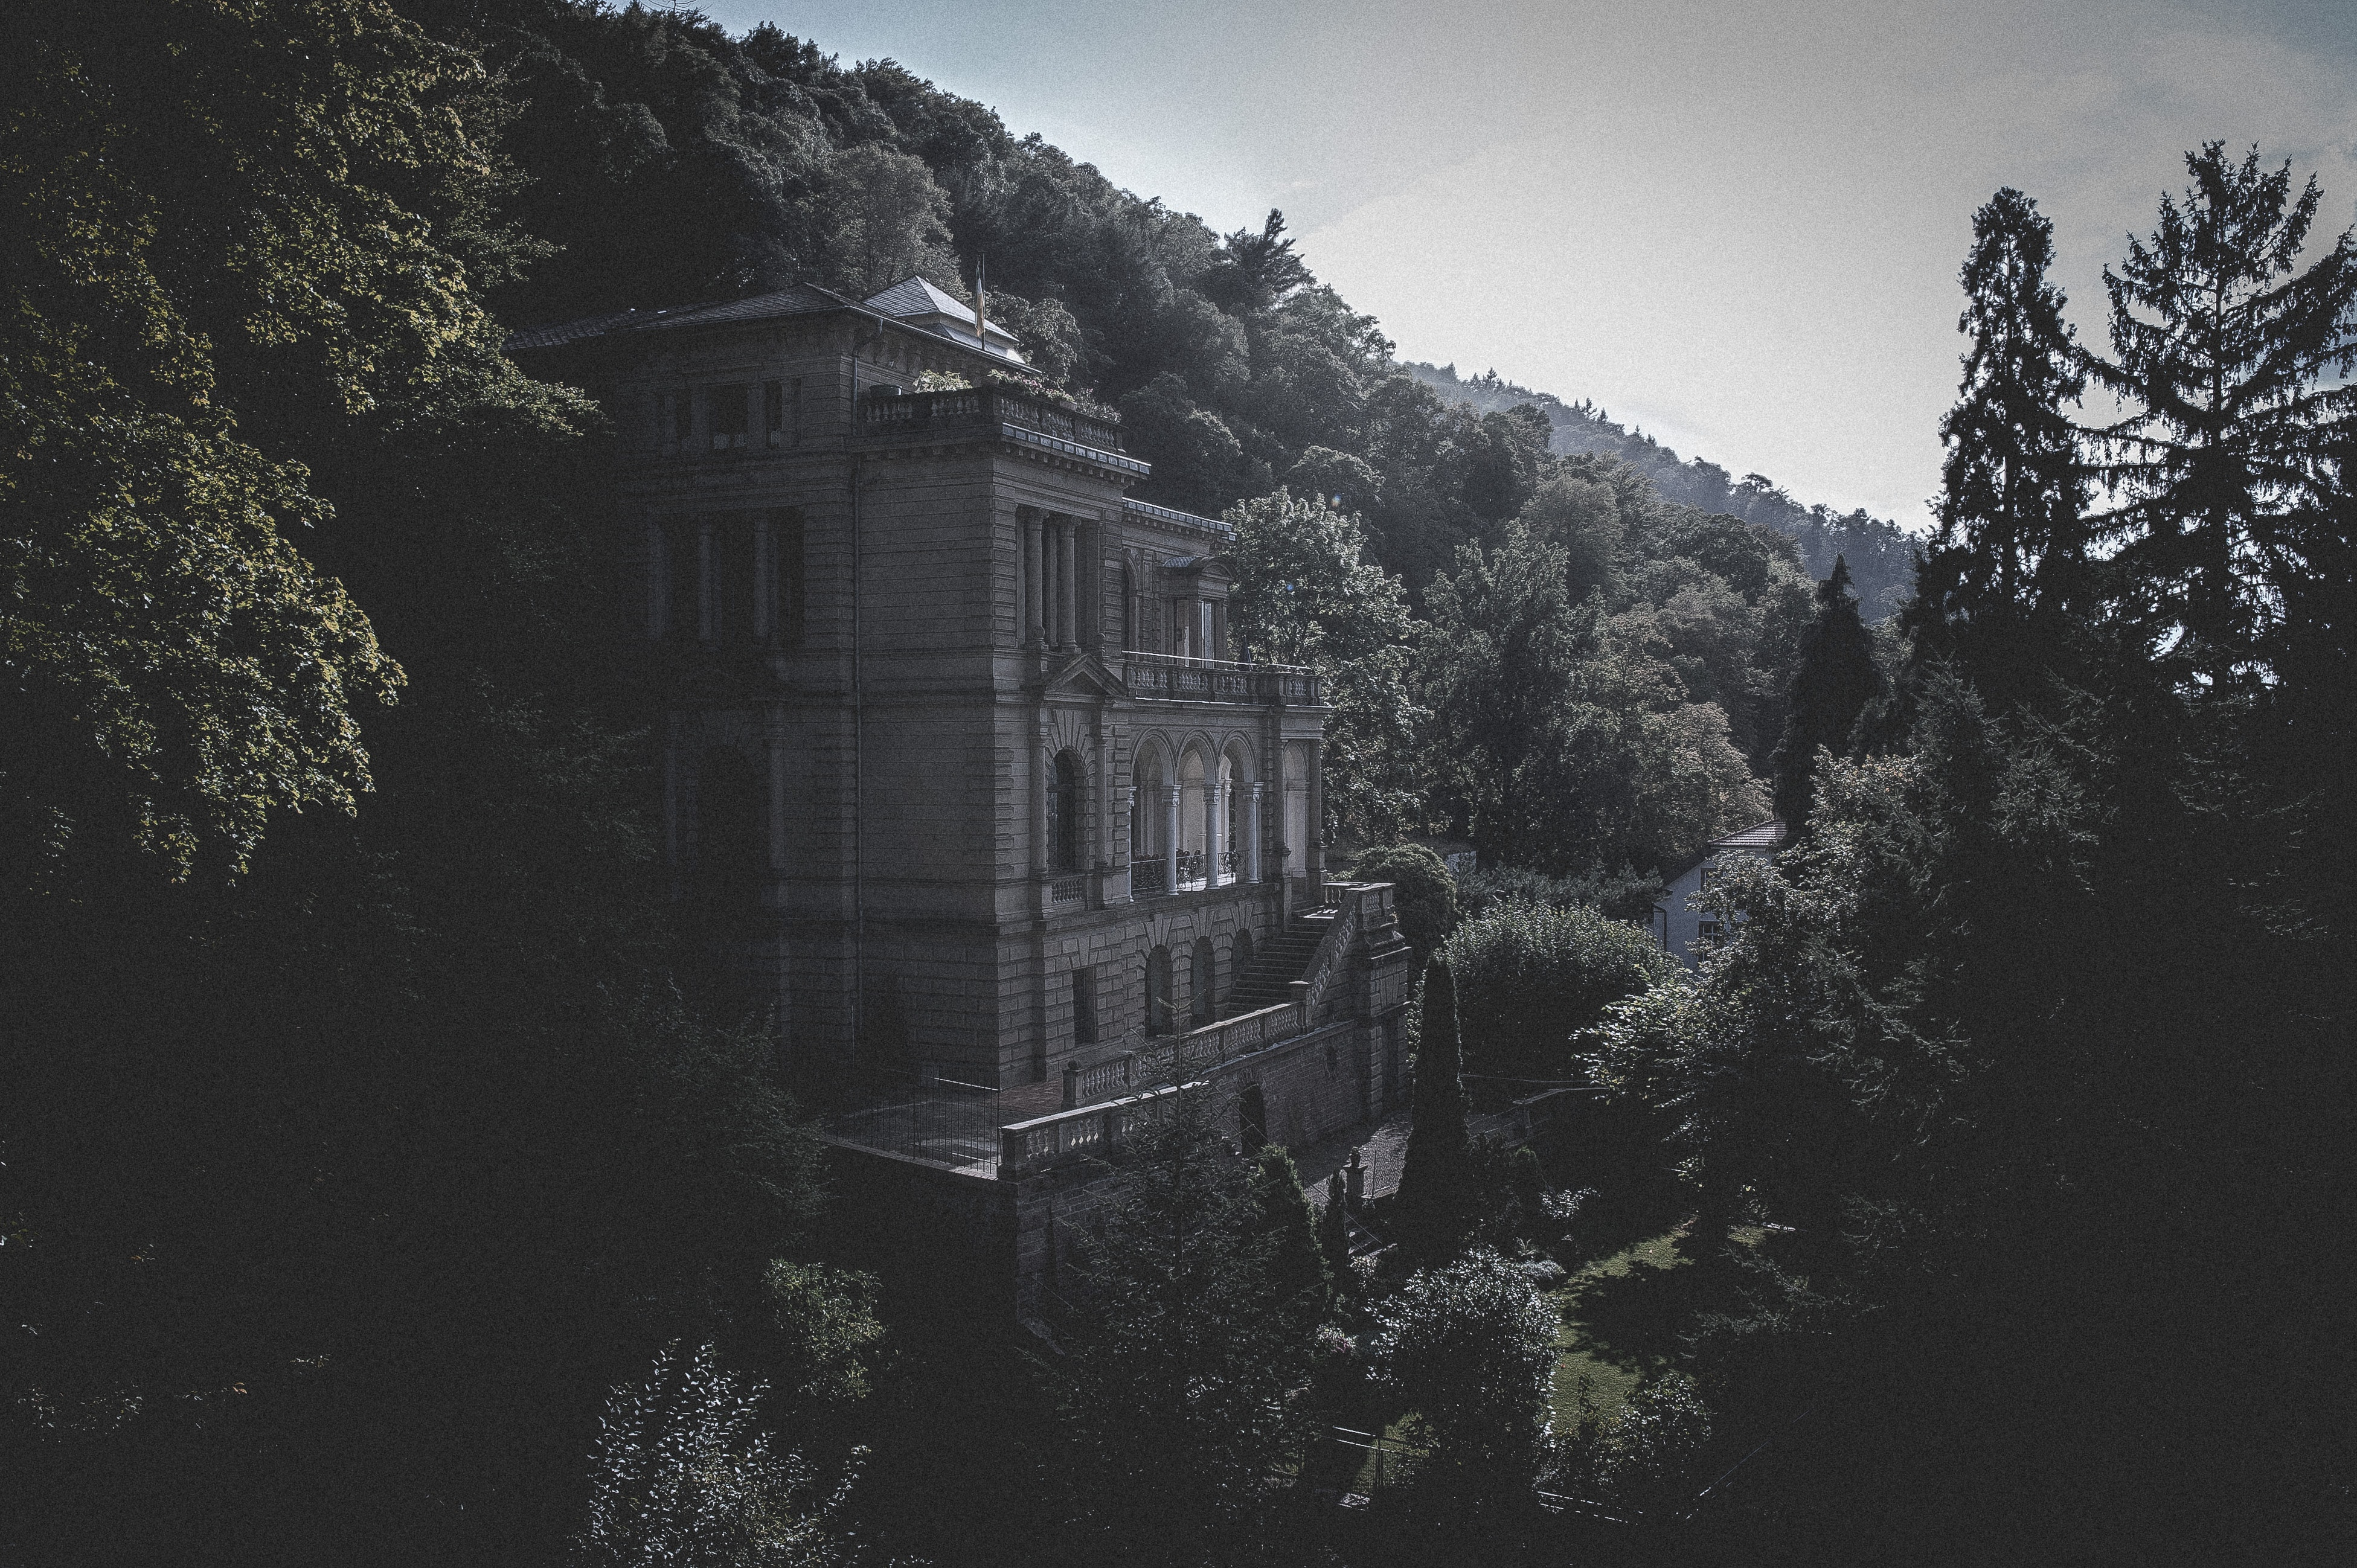 A historic building in neoclassical style surrounded by woods in Heidelberg